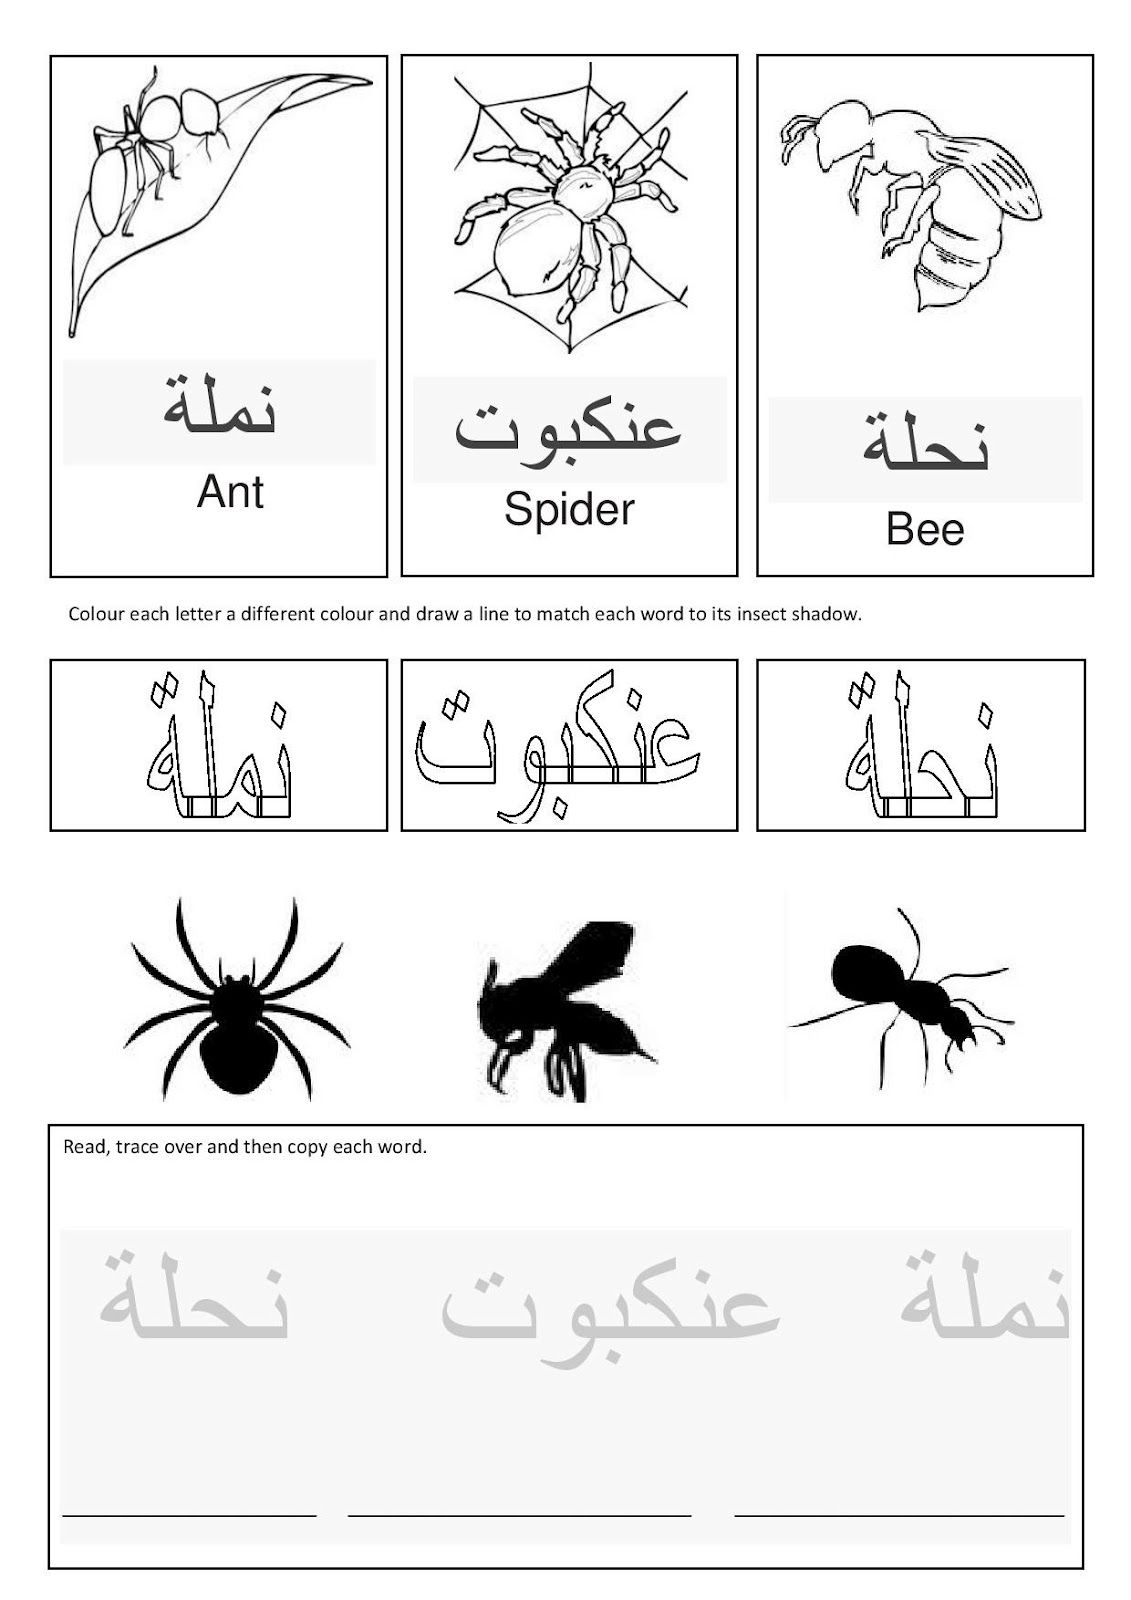 arabic insects free templates links and more islam for children learn arabic alphabet. Black Bedroom Furniture Sets. Home Design Ideas